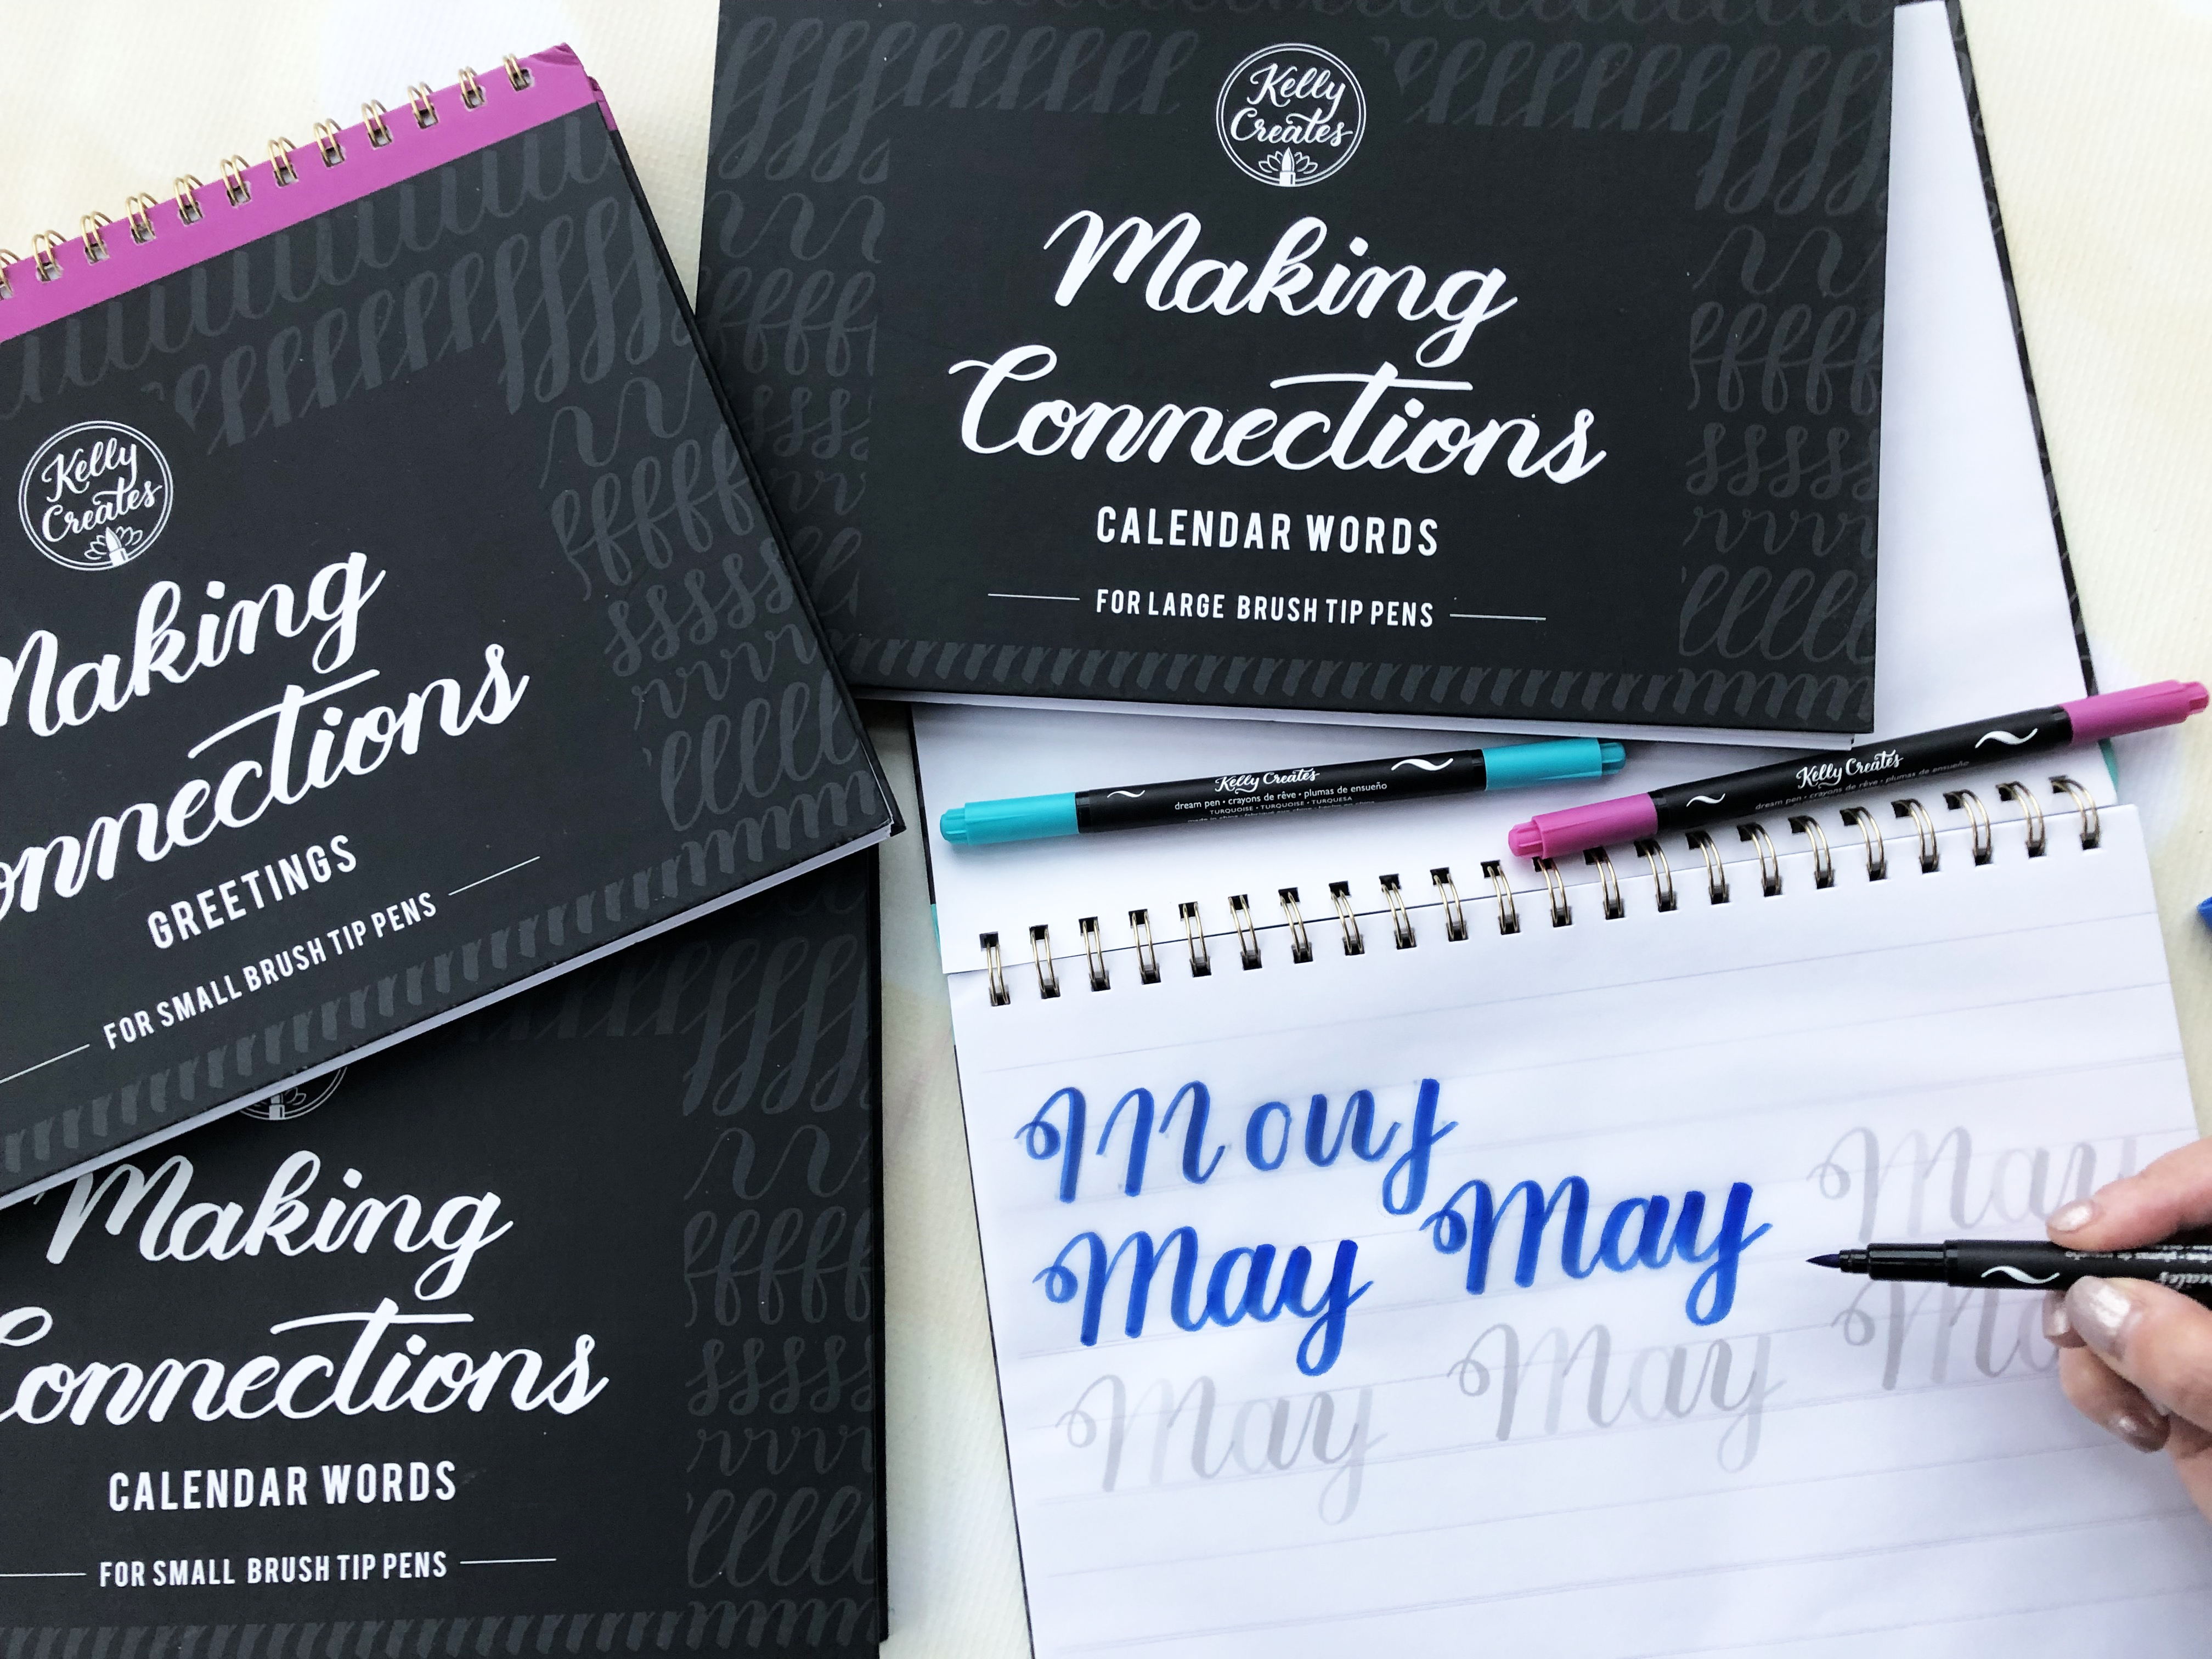 Kelly Creates Products for Hand Lettering